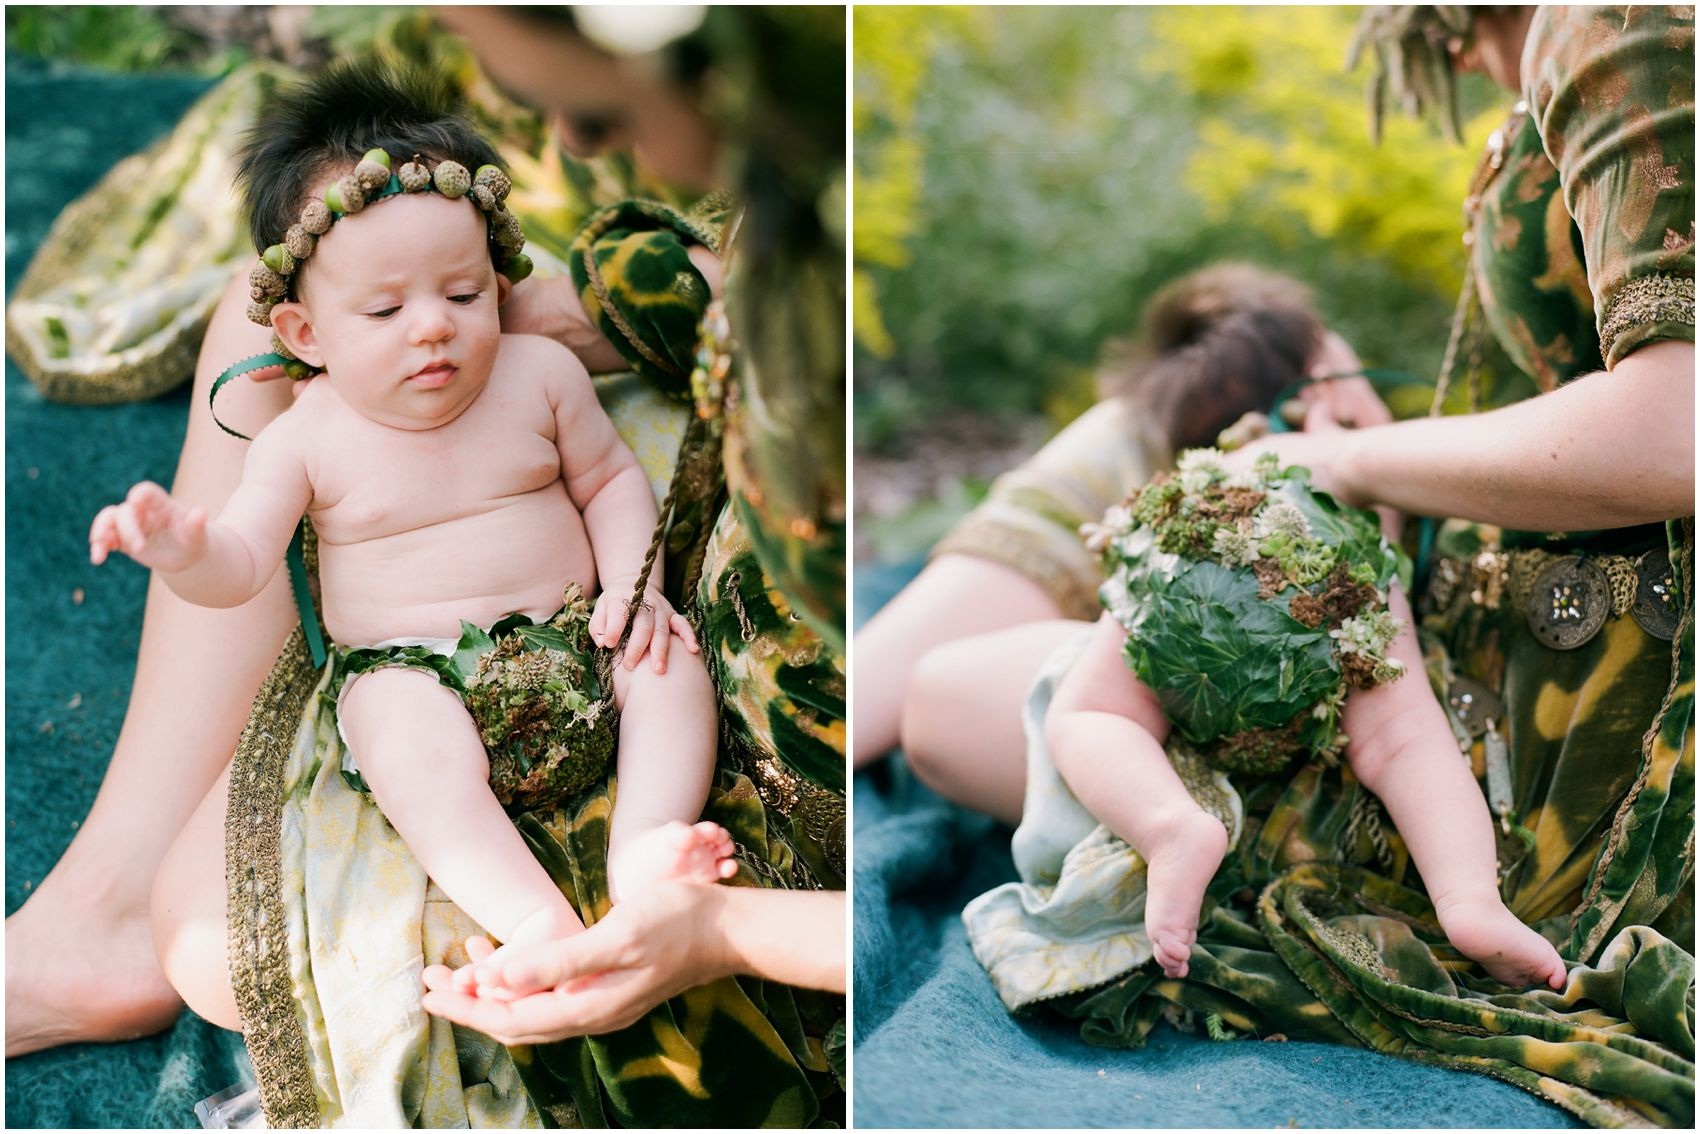 cutest baby with floral wreath and floral baby cover